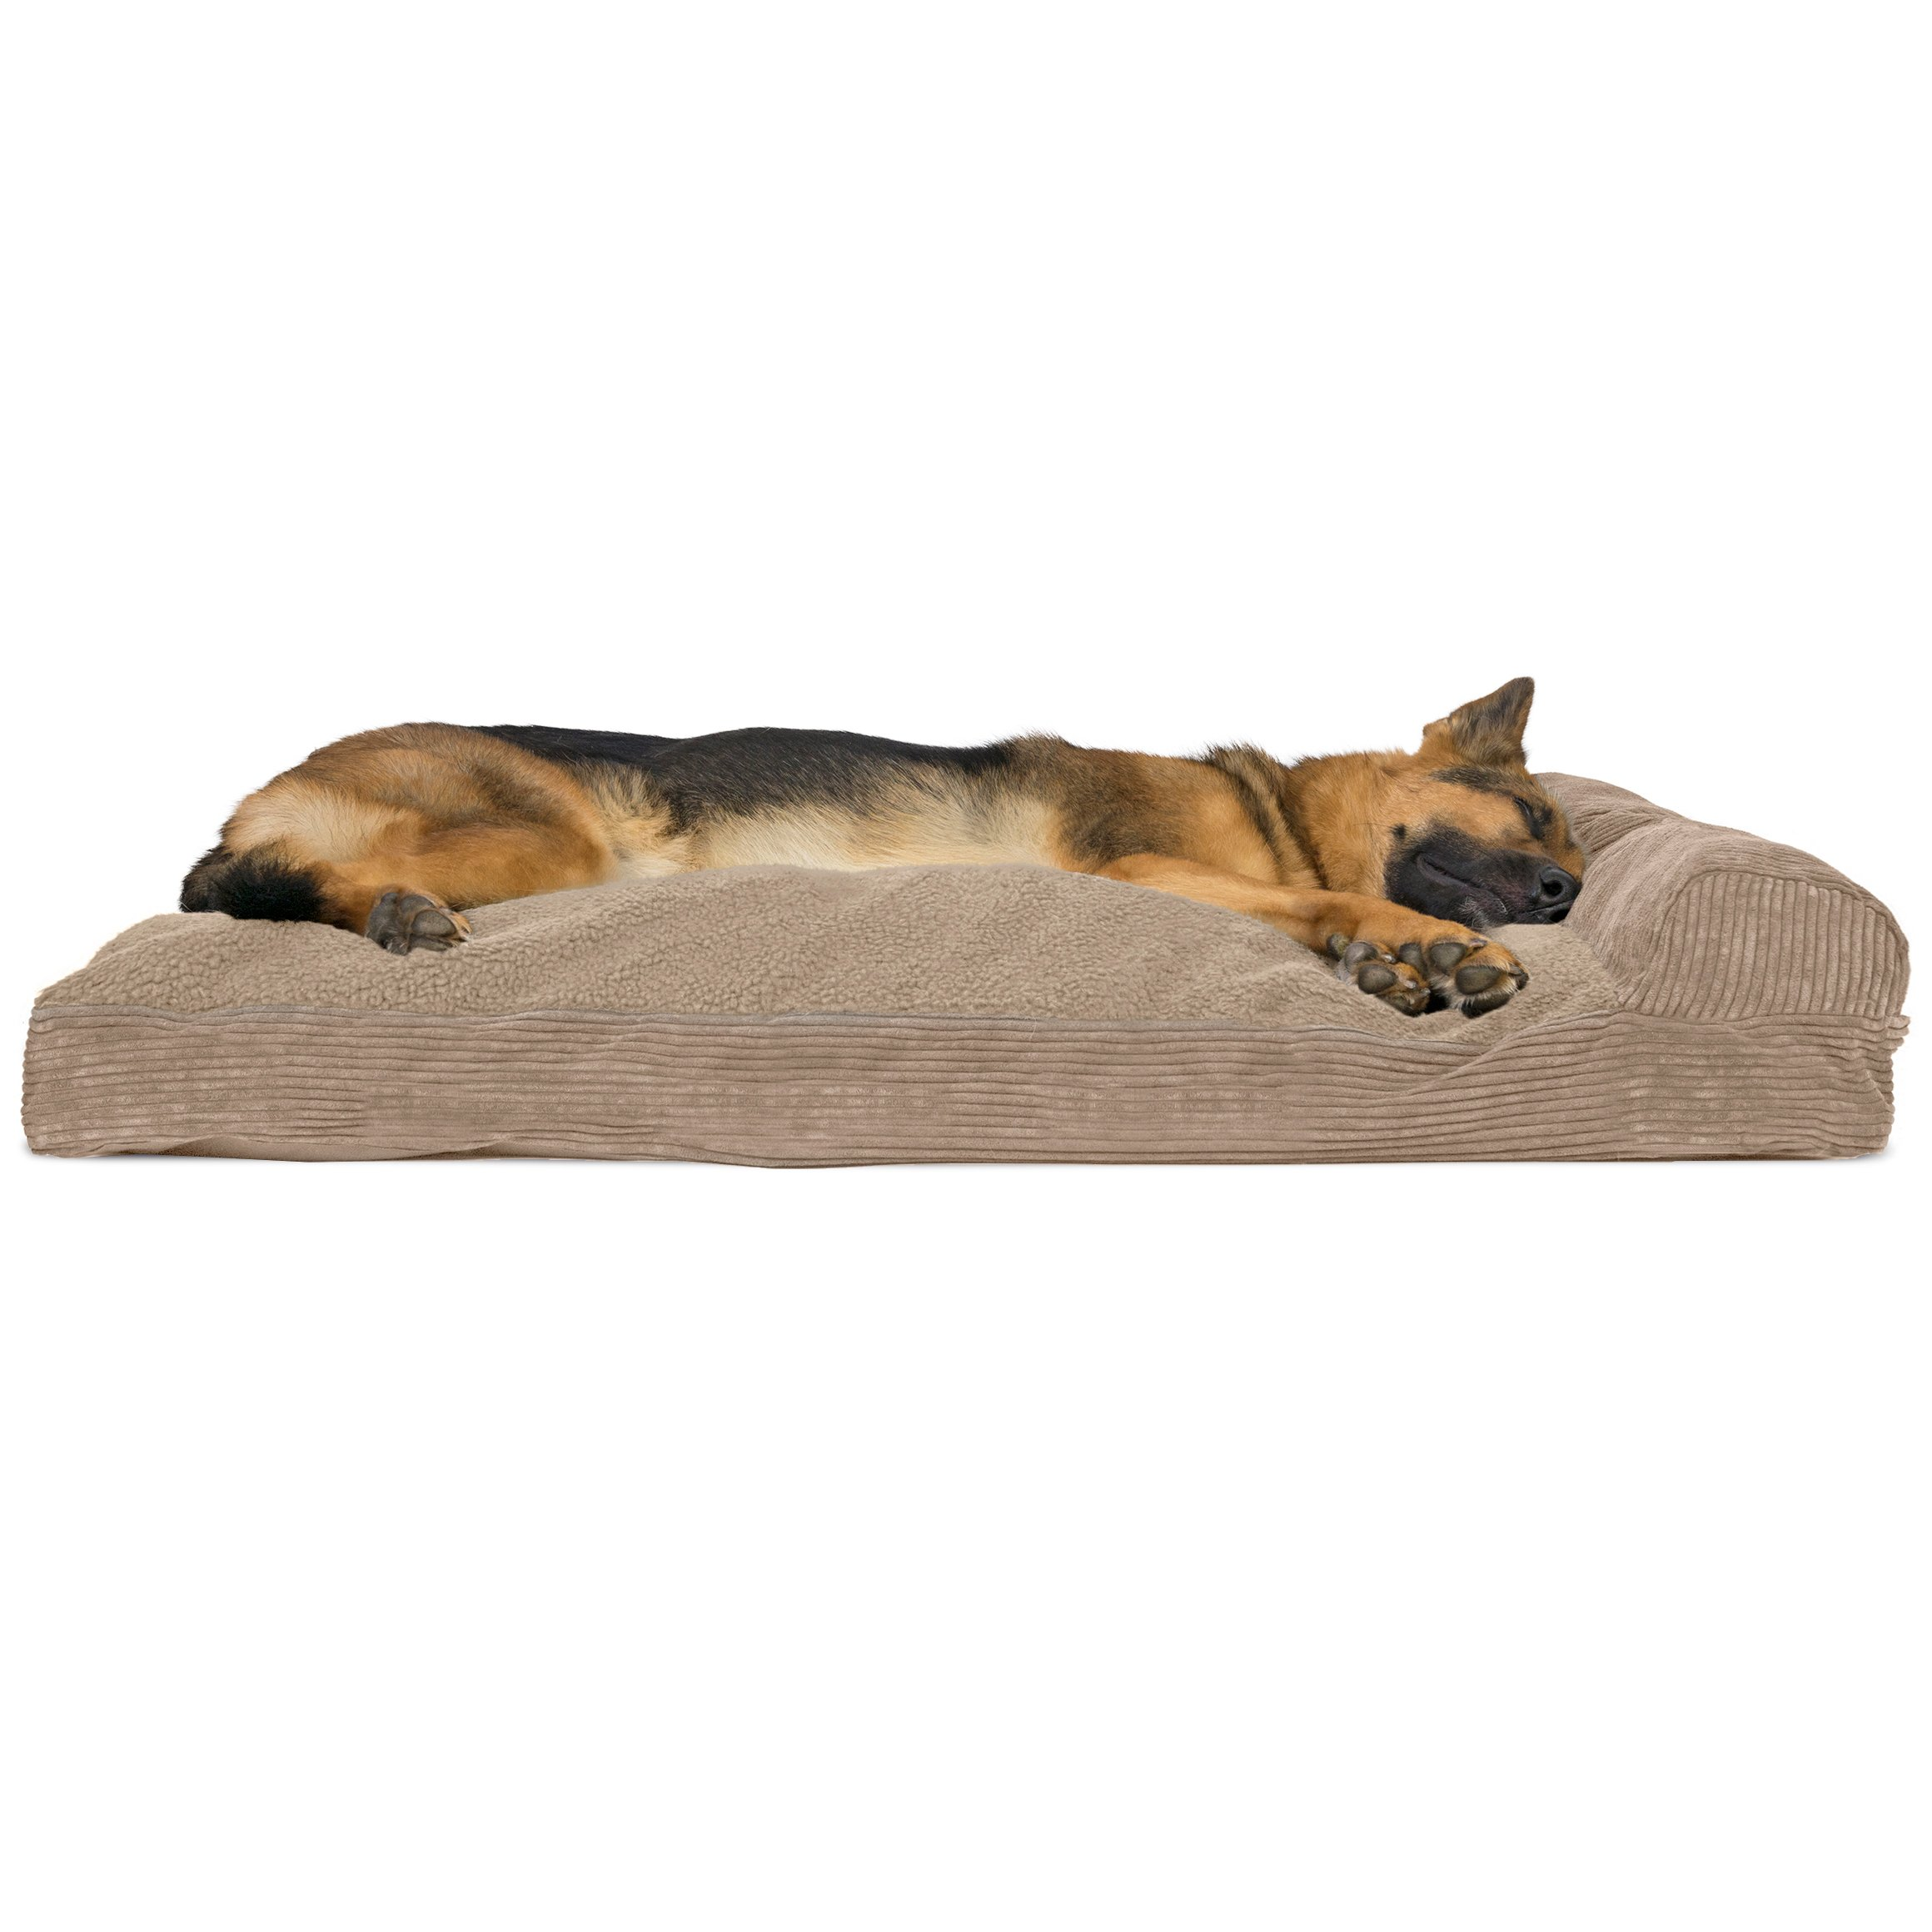 Furhaven Pet Dog Bed | Faux Fleece & Corduroy Deluxe Chaise Lounge Pillow Cushion Sofa-Style Living Room Couch Pet Bed w/ Removable Cover for Dogs & Cats, Sandstone, Jumbo by Furhaven